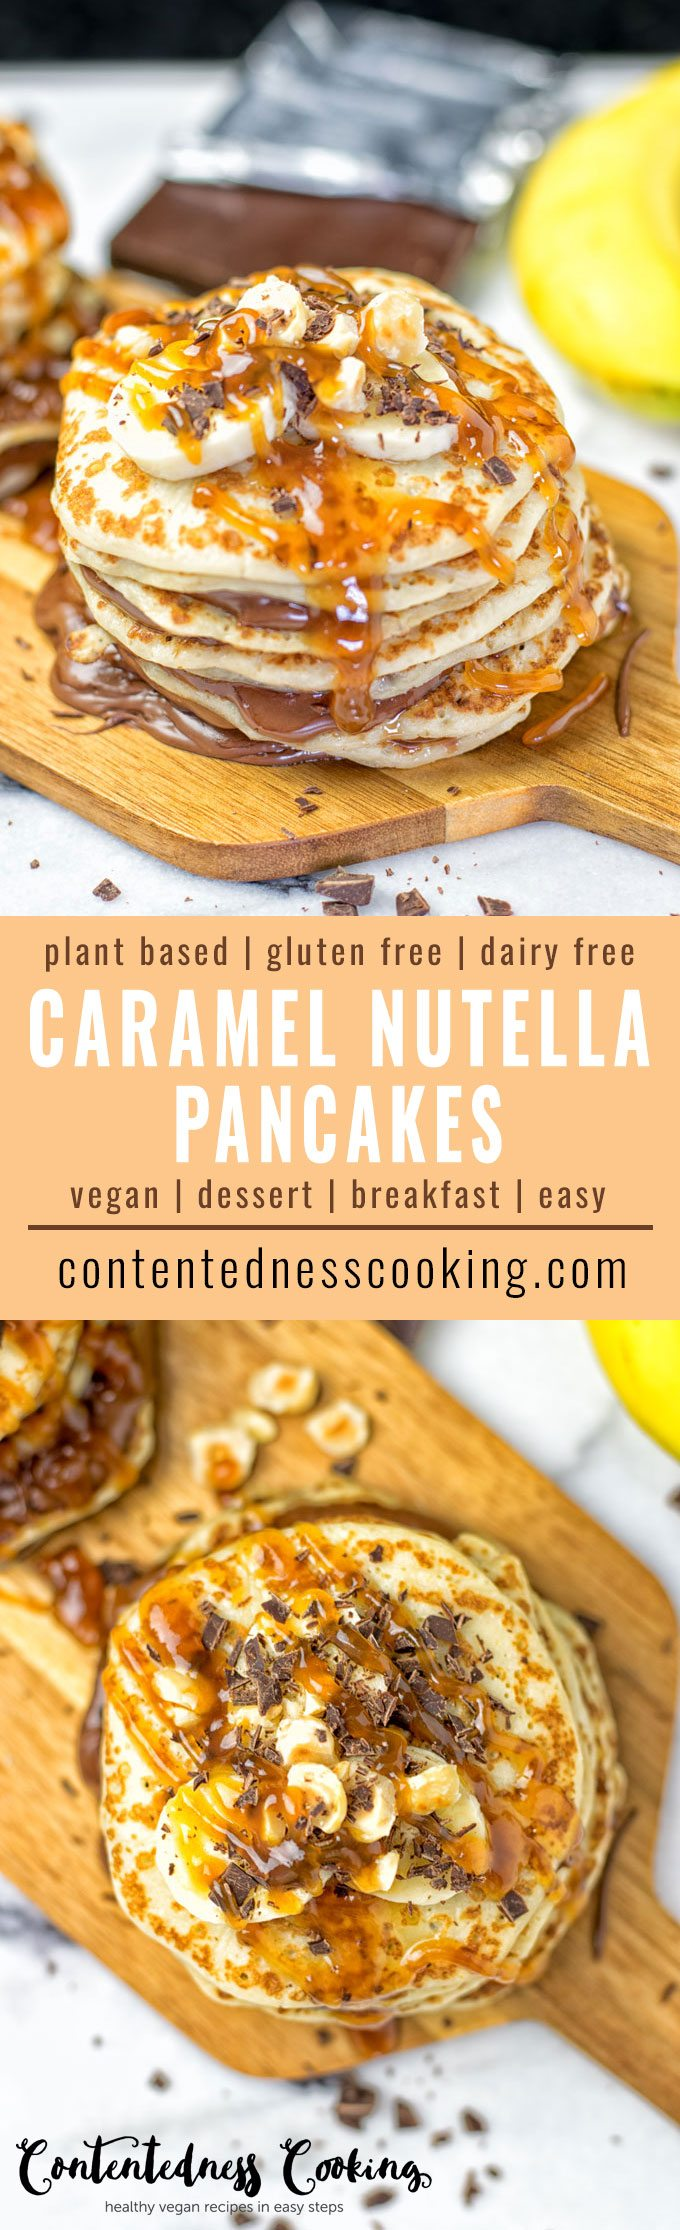 Collage of two pictures of Vegan Caramel Nutella Pancakes with recipe title text.